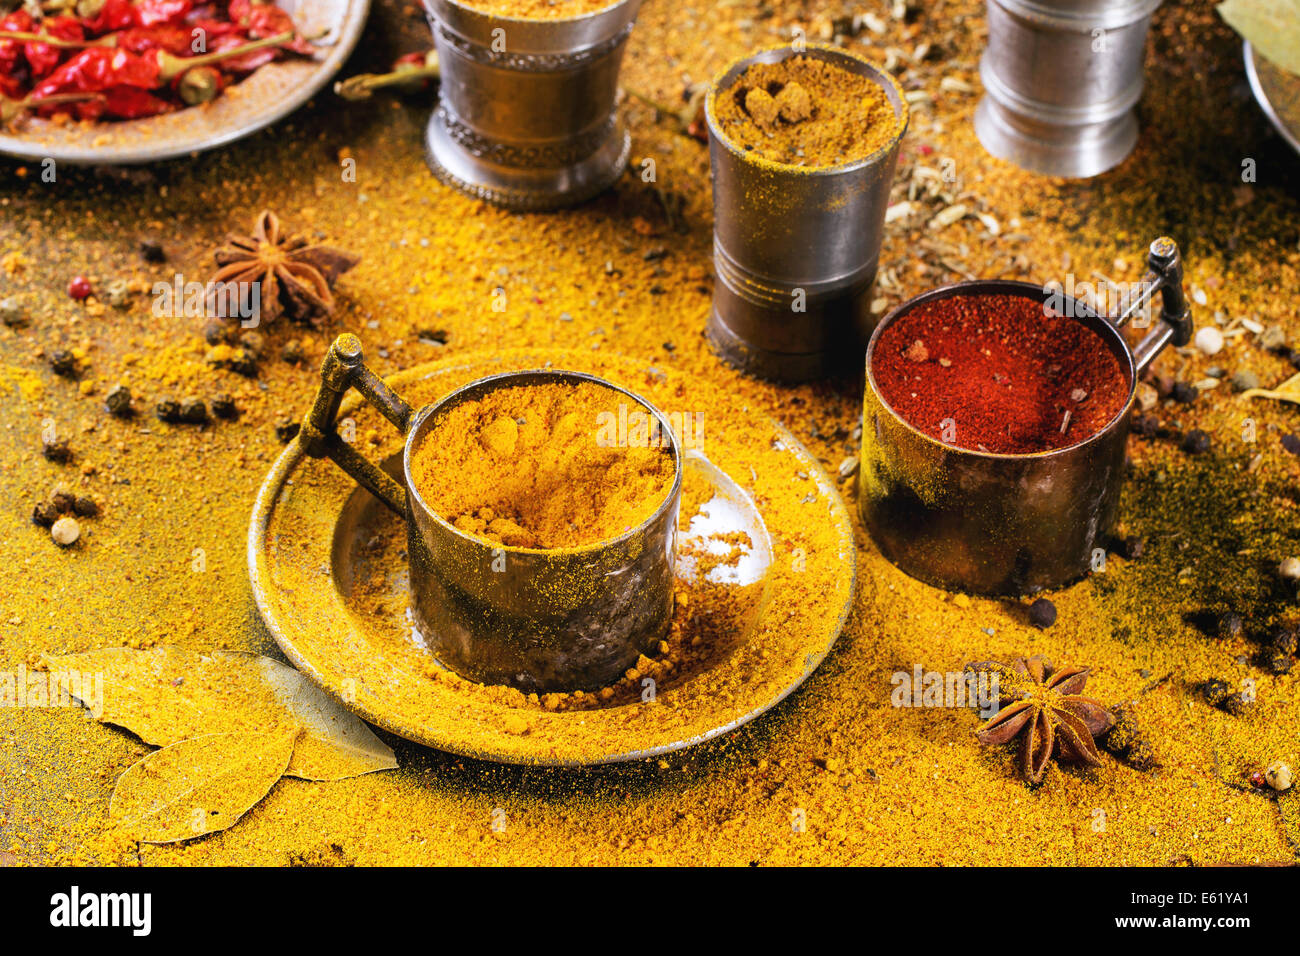 Set of spices pepper, turmeric, anise, coriander in vintage metal cups over yellow curry powder Stock Photo